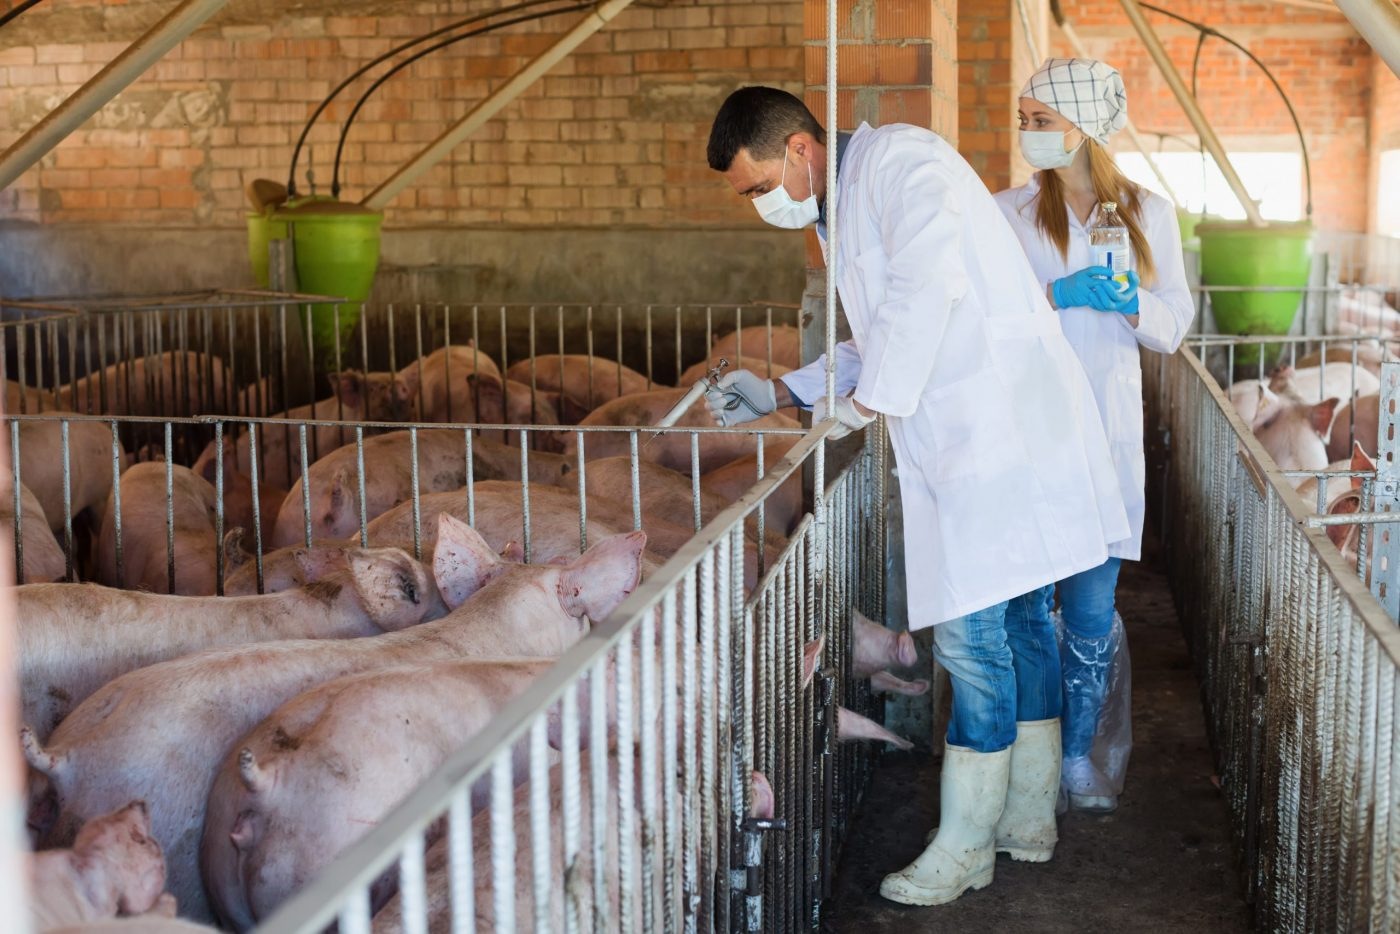 Vet giving drugs to factory pigs